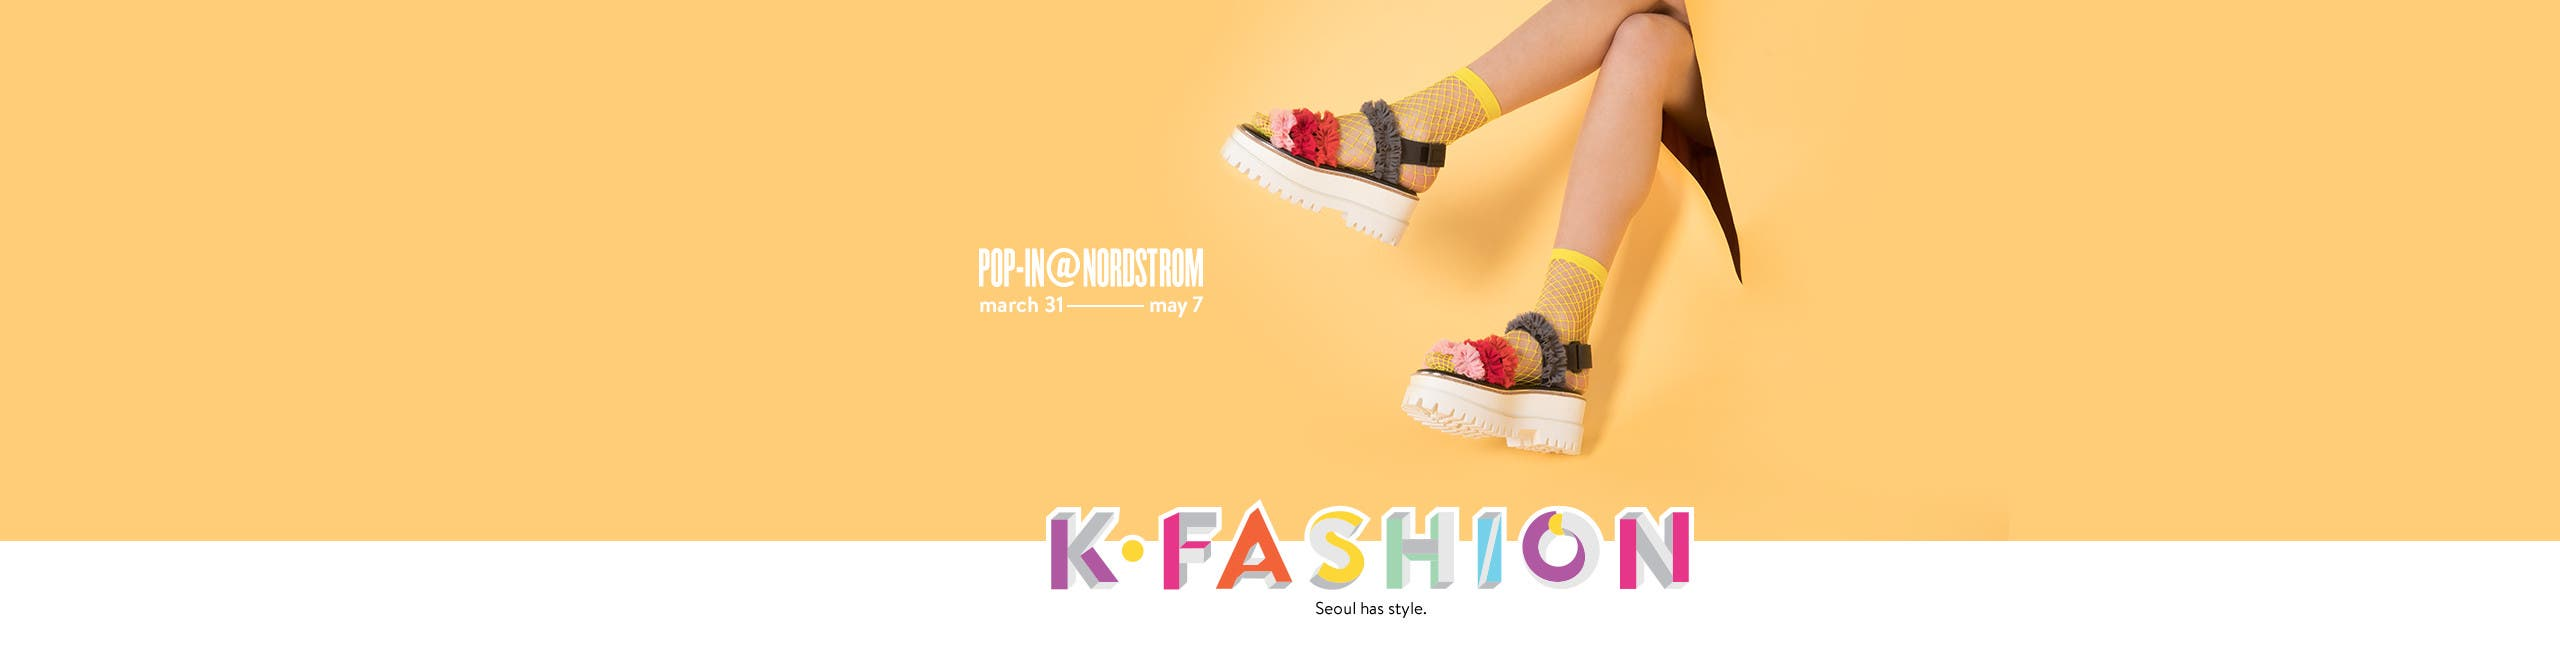 Pop-In@Nordstrom: KFASHION. March 31 to May 7, 2017.